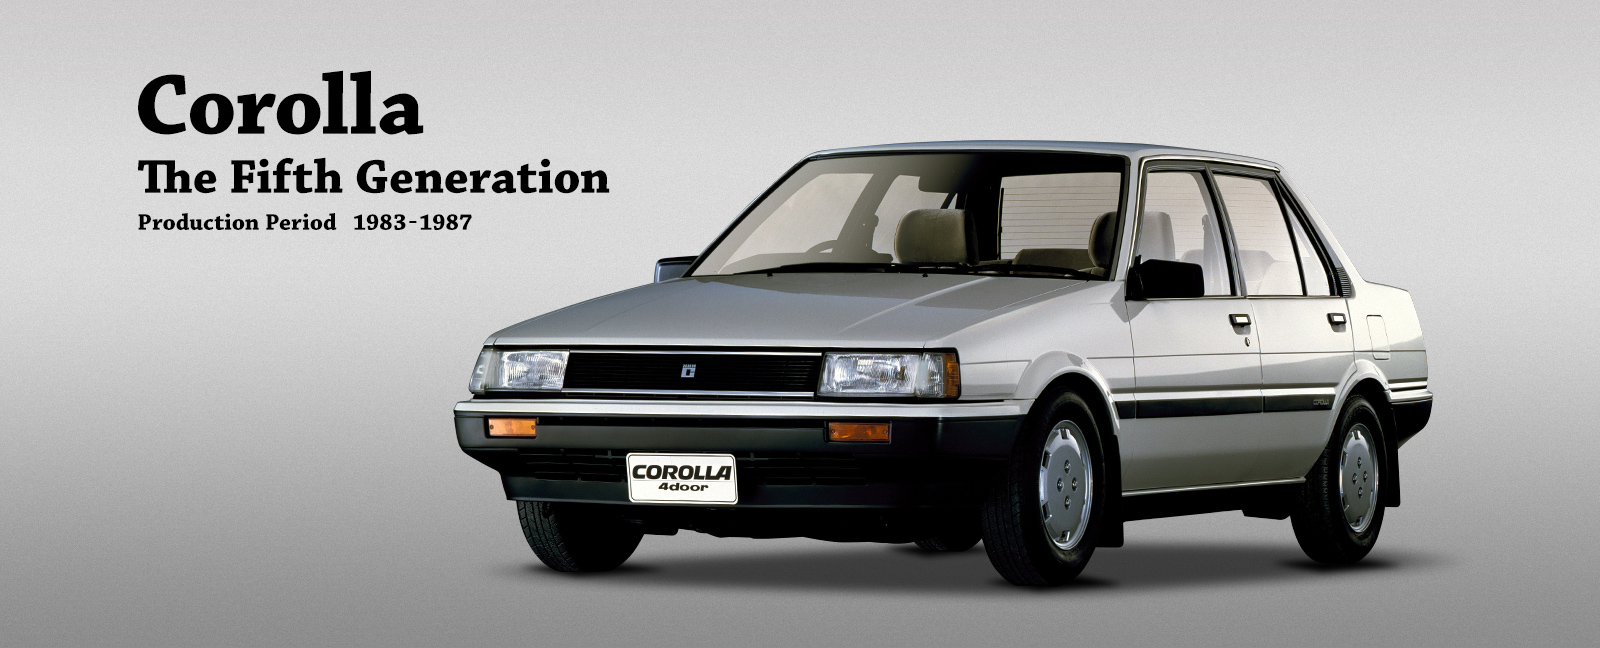 Vehicle Heritage, Corolla, The Fifth Generation